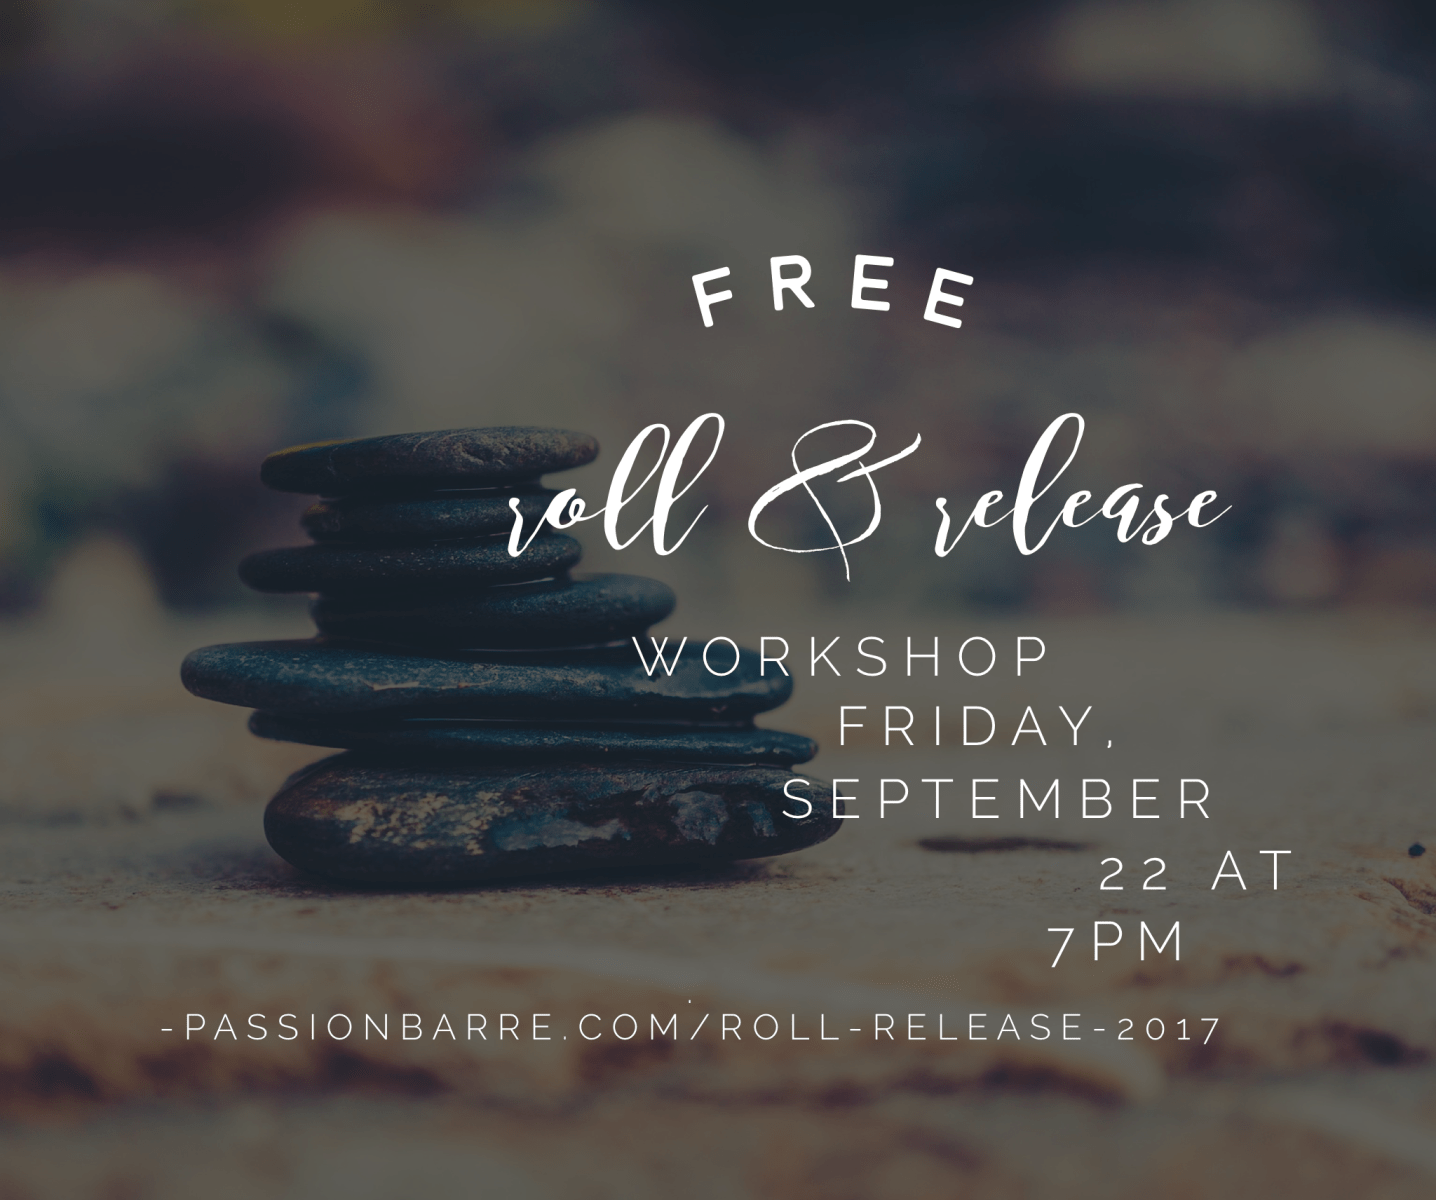 Passion Barre Image of Roll and Release Workshop Announcement